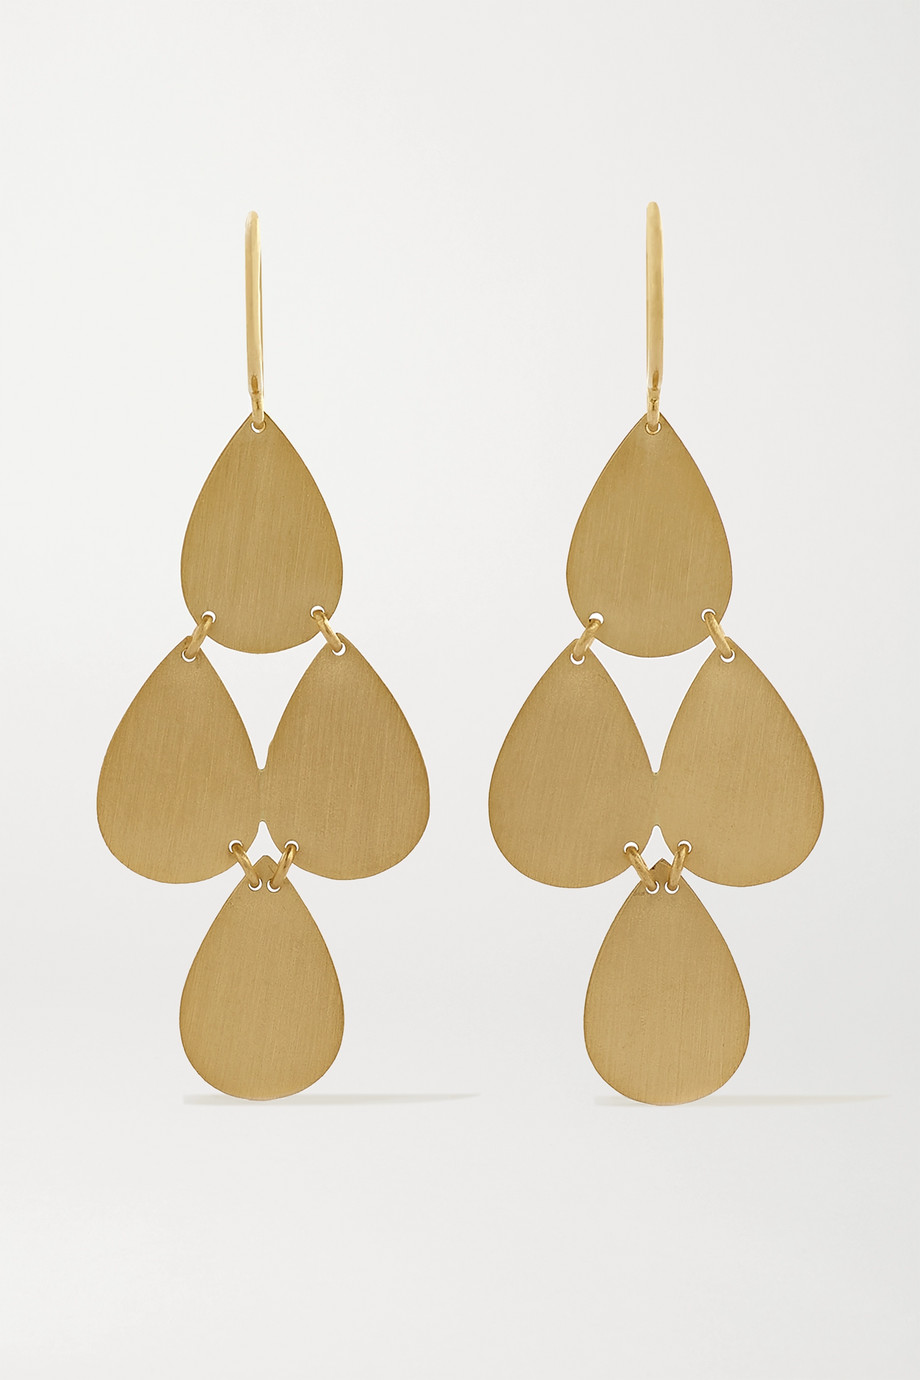 Irene Neuwirth 18-karat gold earrings